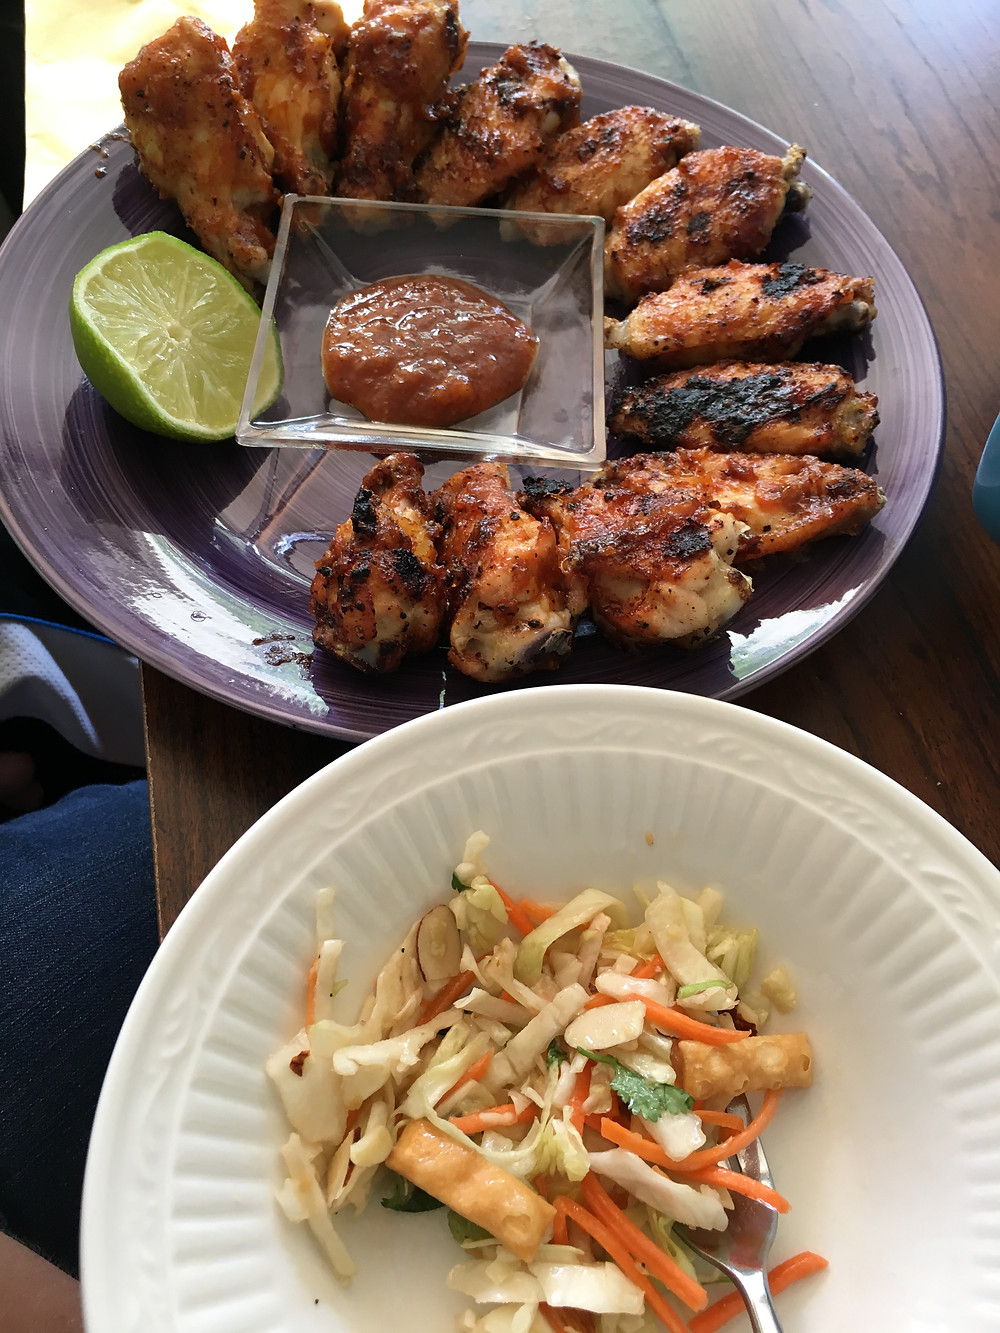 Grilled Chicken wings and salad